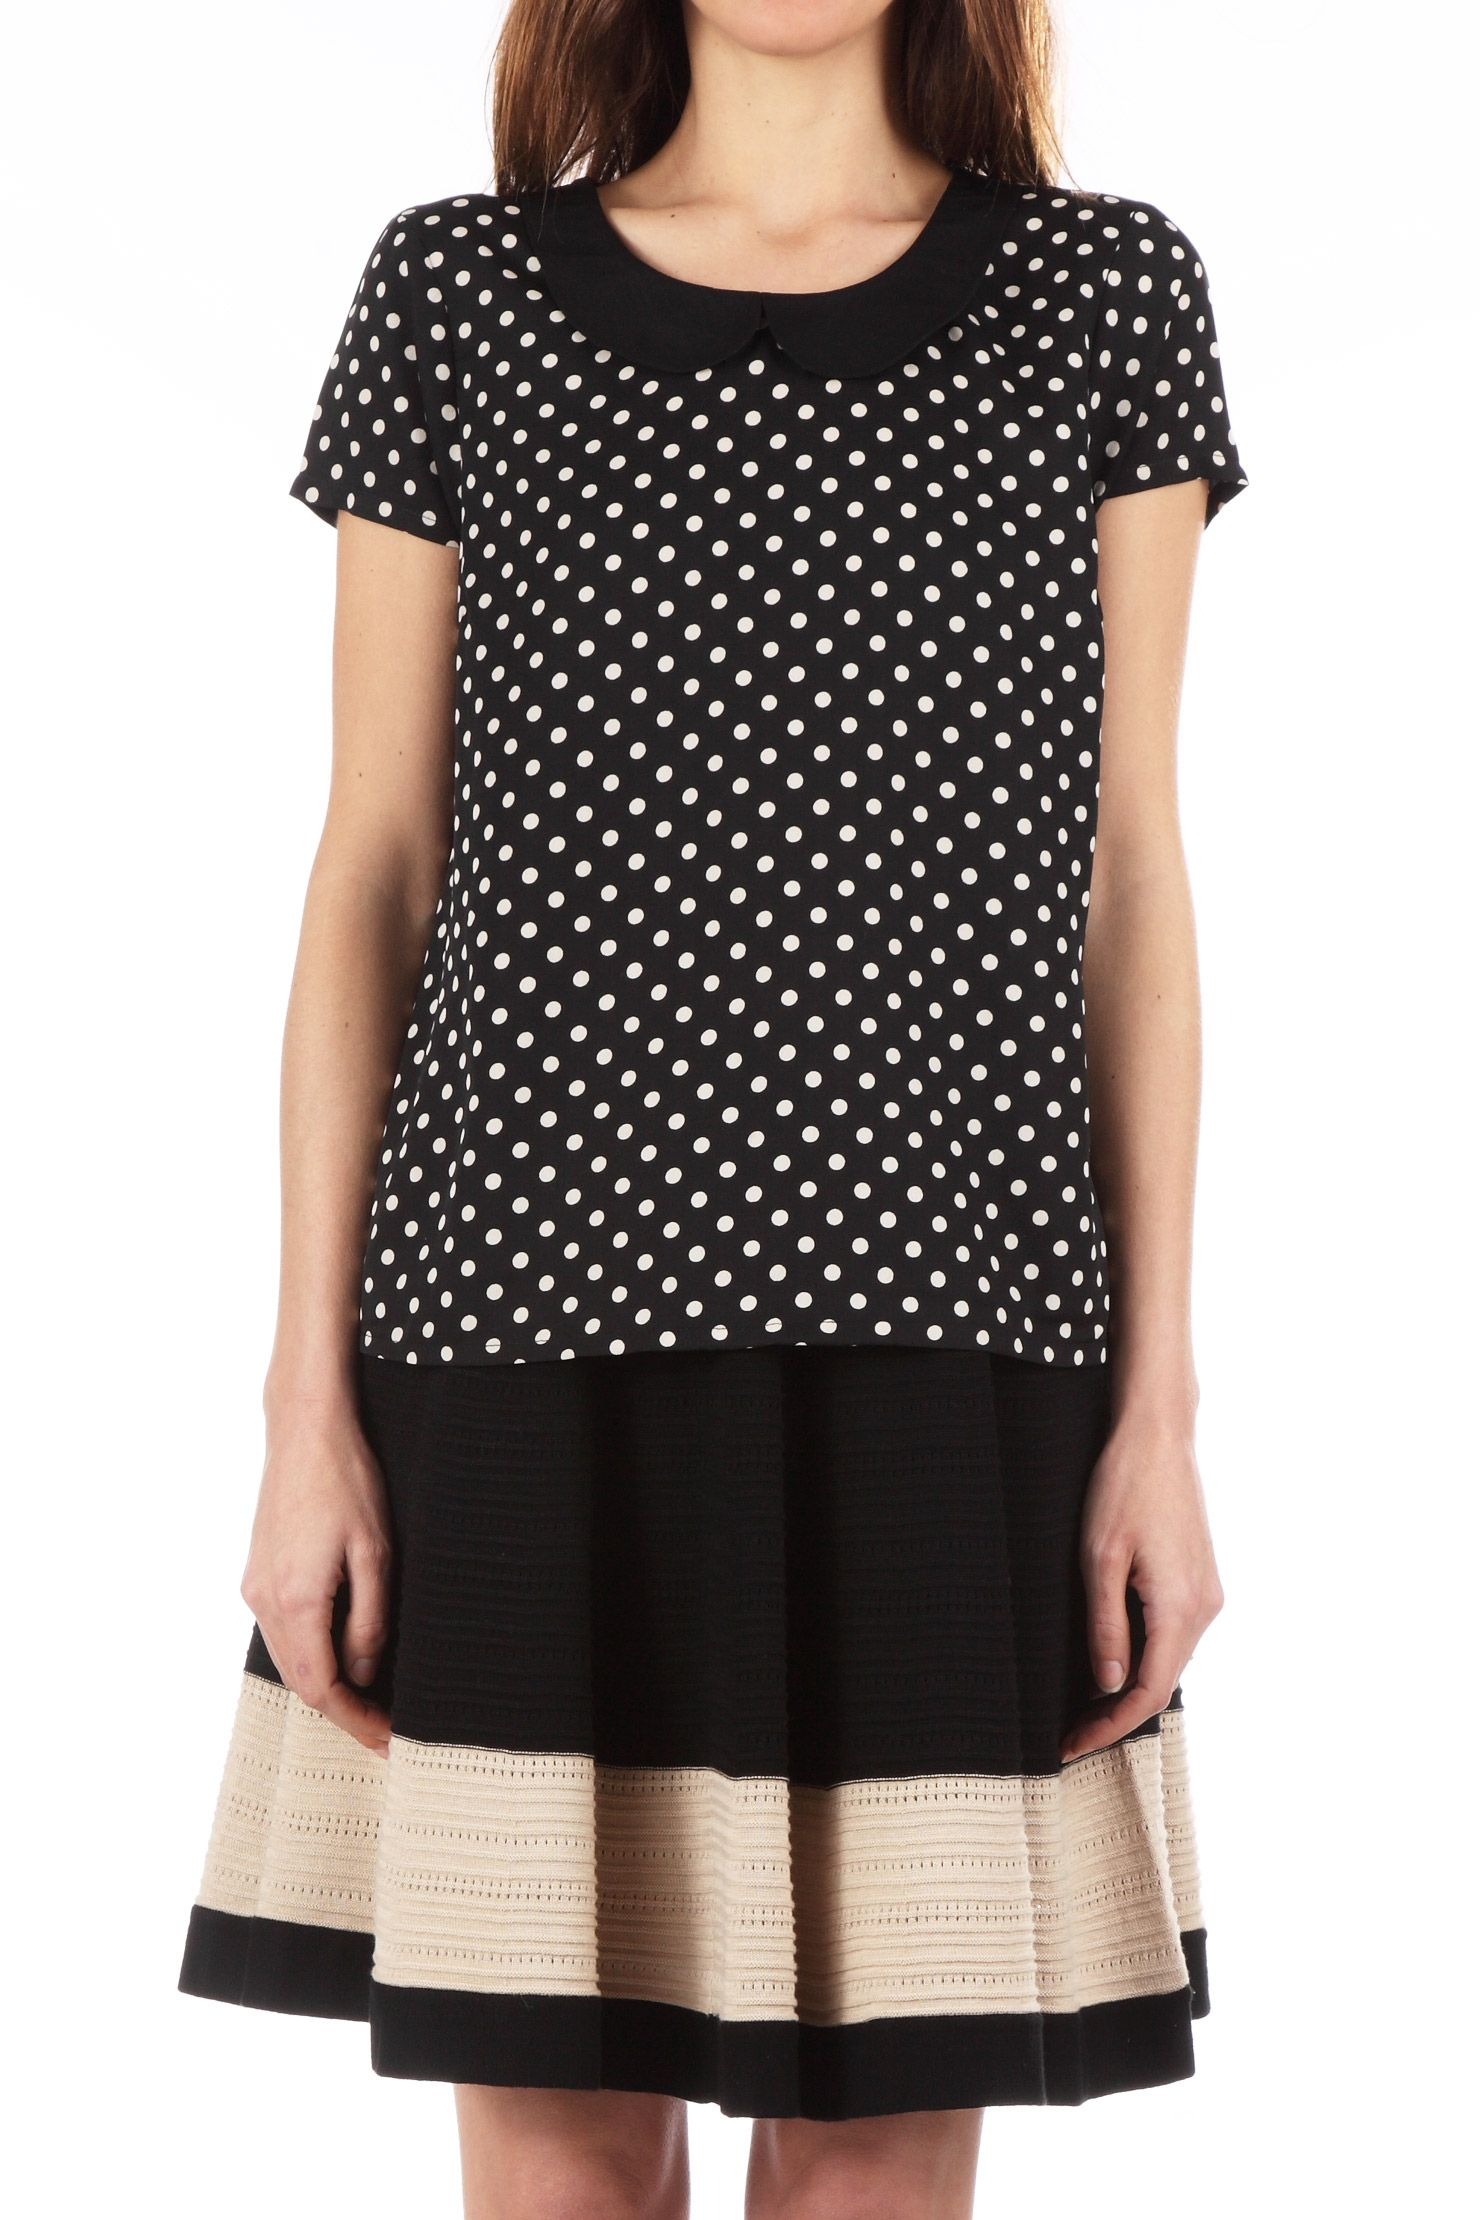 Vero Moda via Monshowroom. Top Nanna. Adorable avec ses pois et son col claudine.